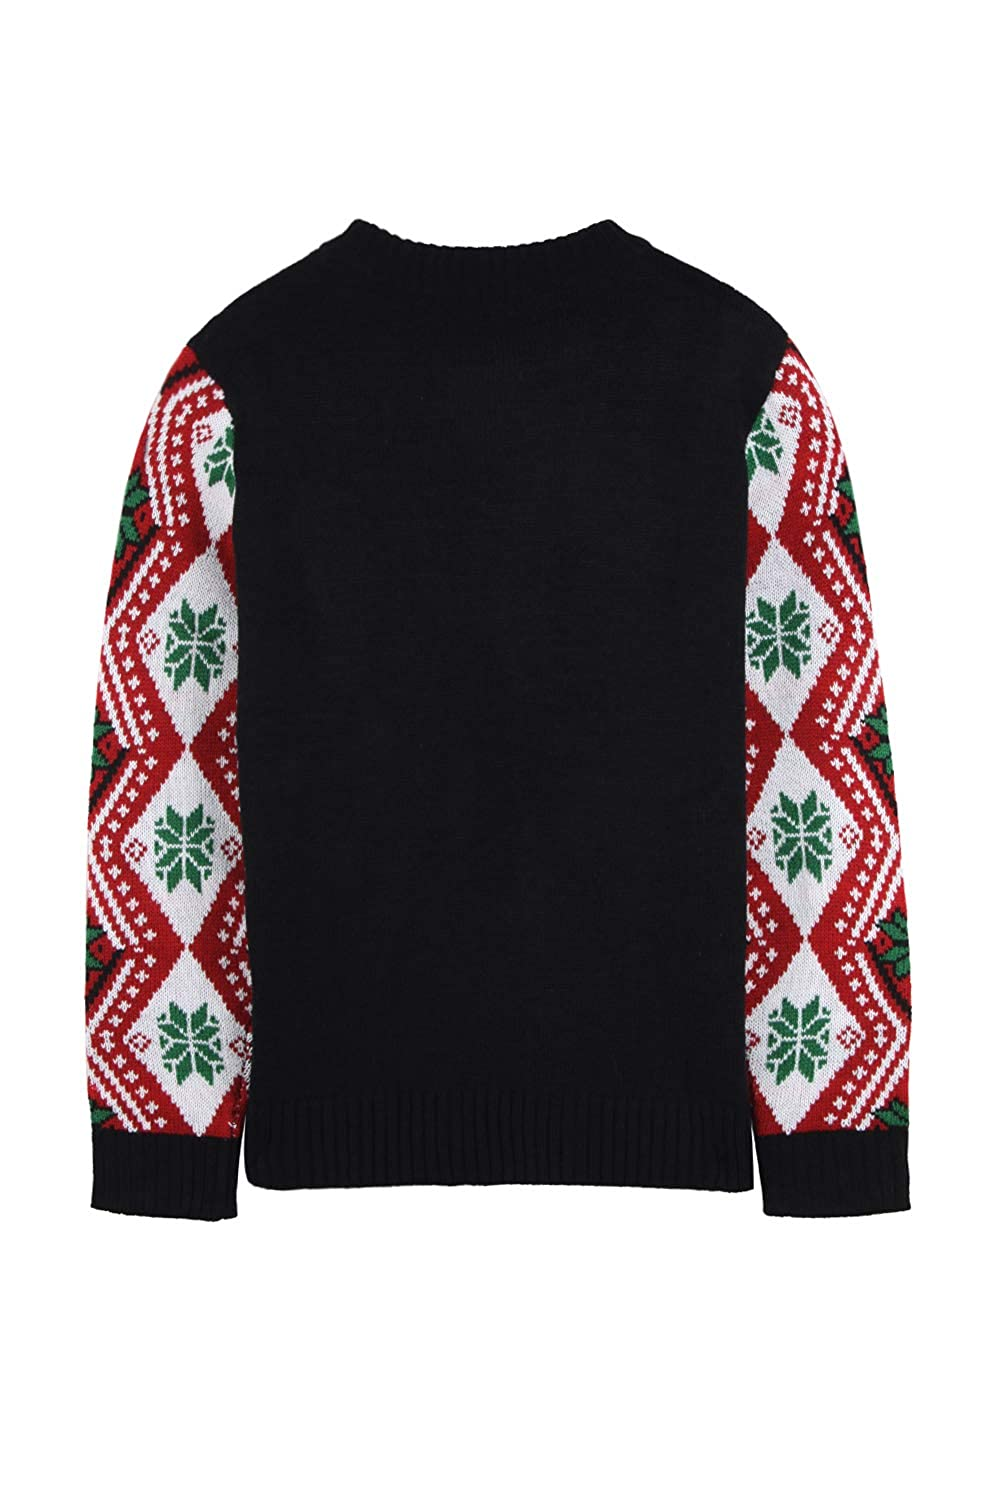 235c9c6fff9d Amazon.com  Pink Queen Women s Knitted Pullover Ugly Christmas Sweater  Jumpers  Clothing